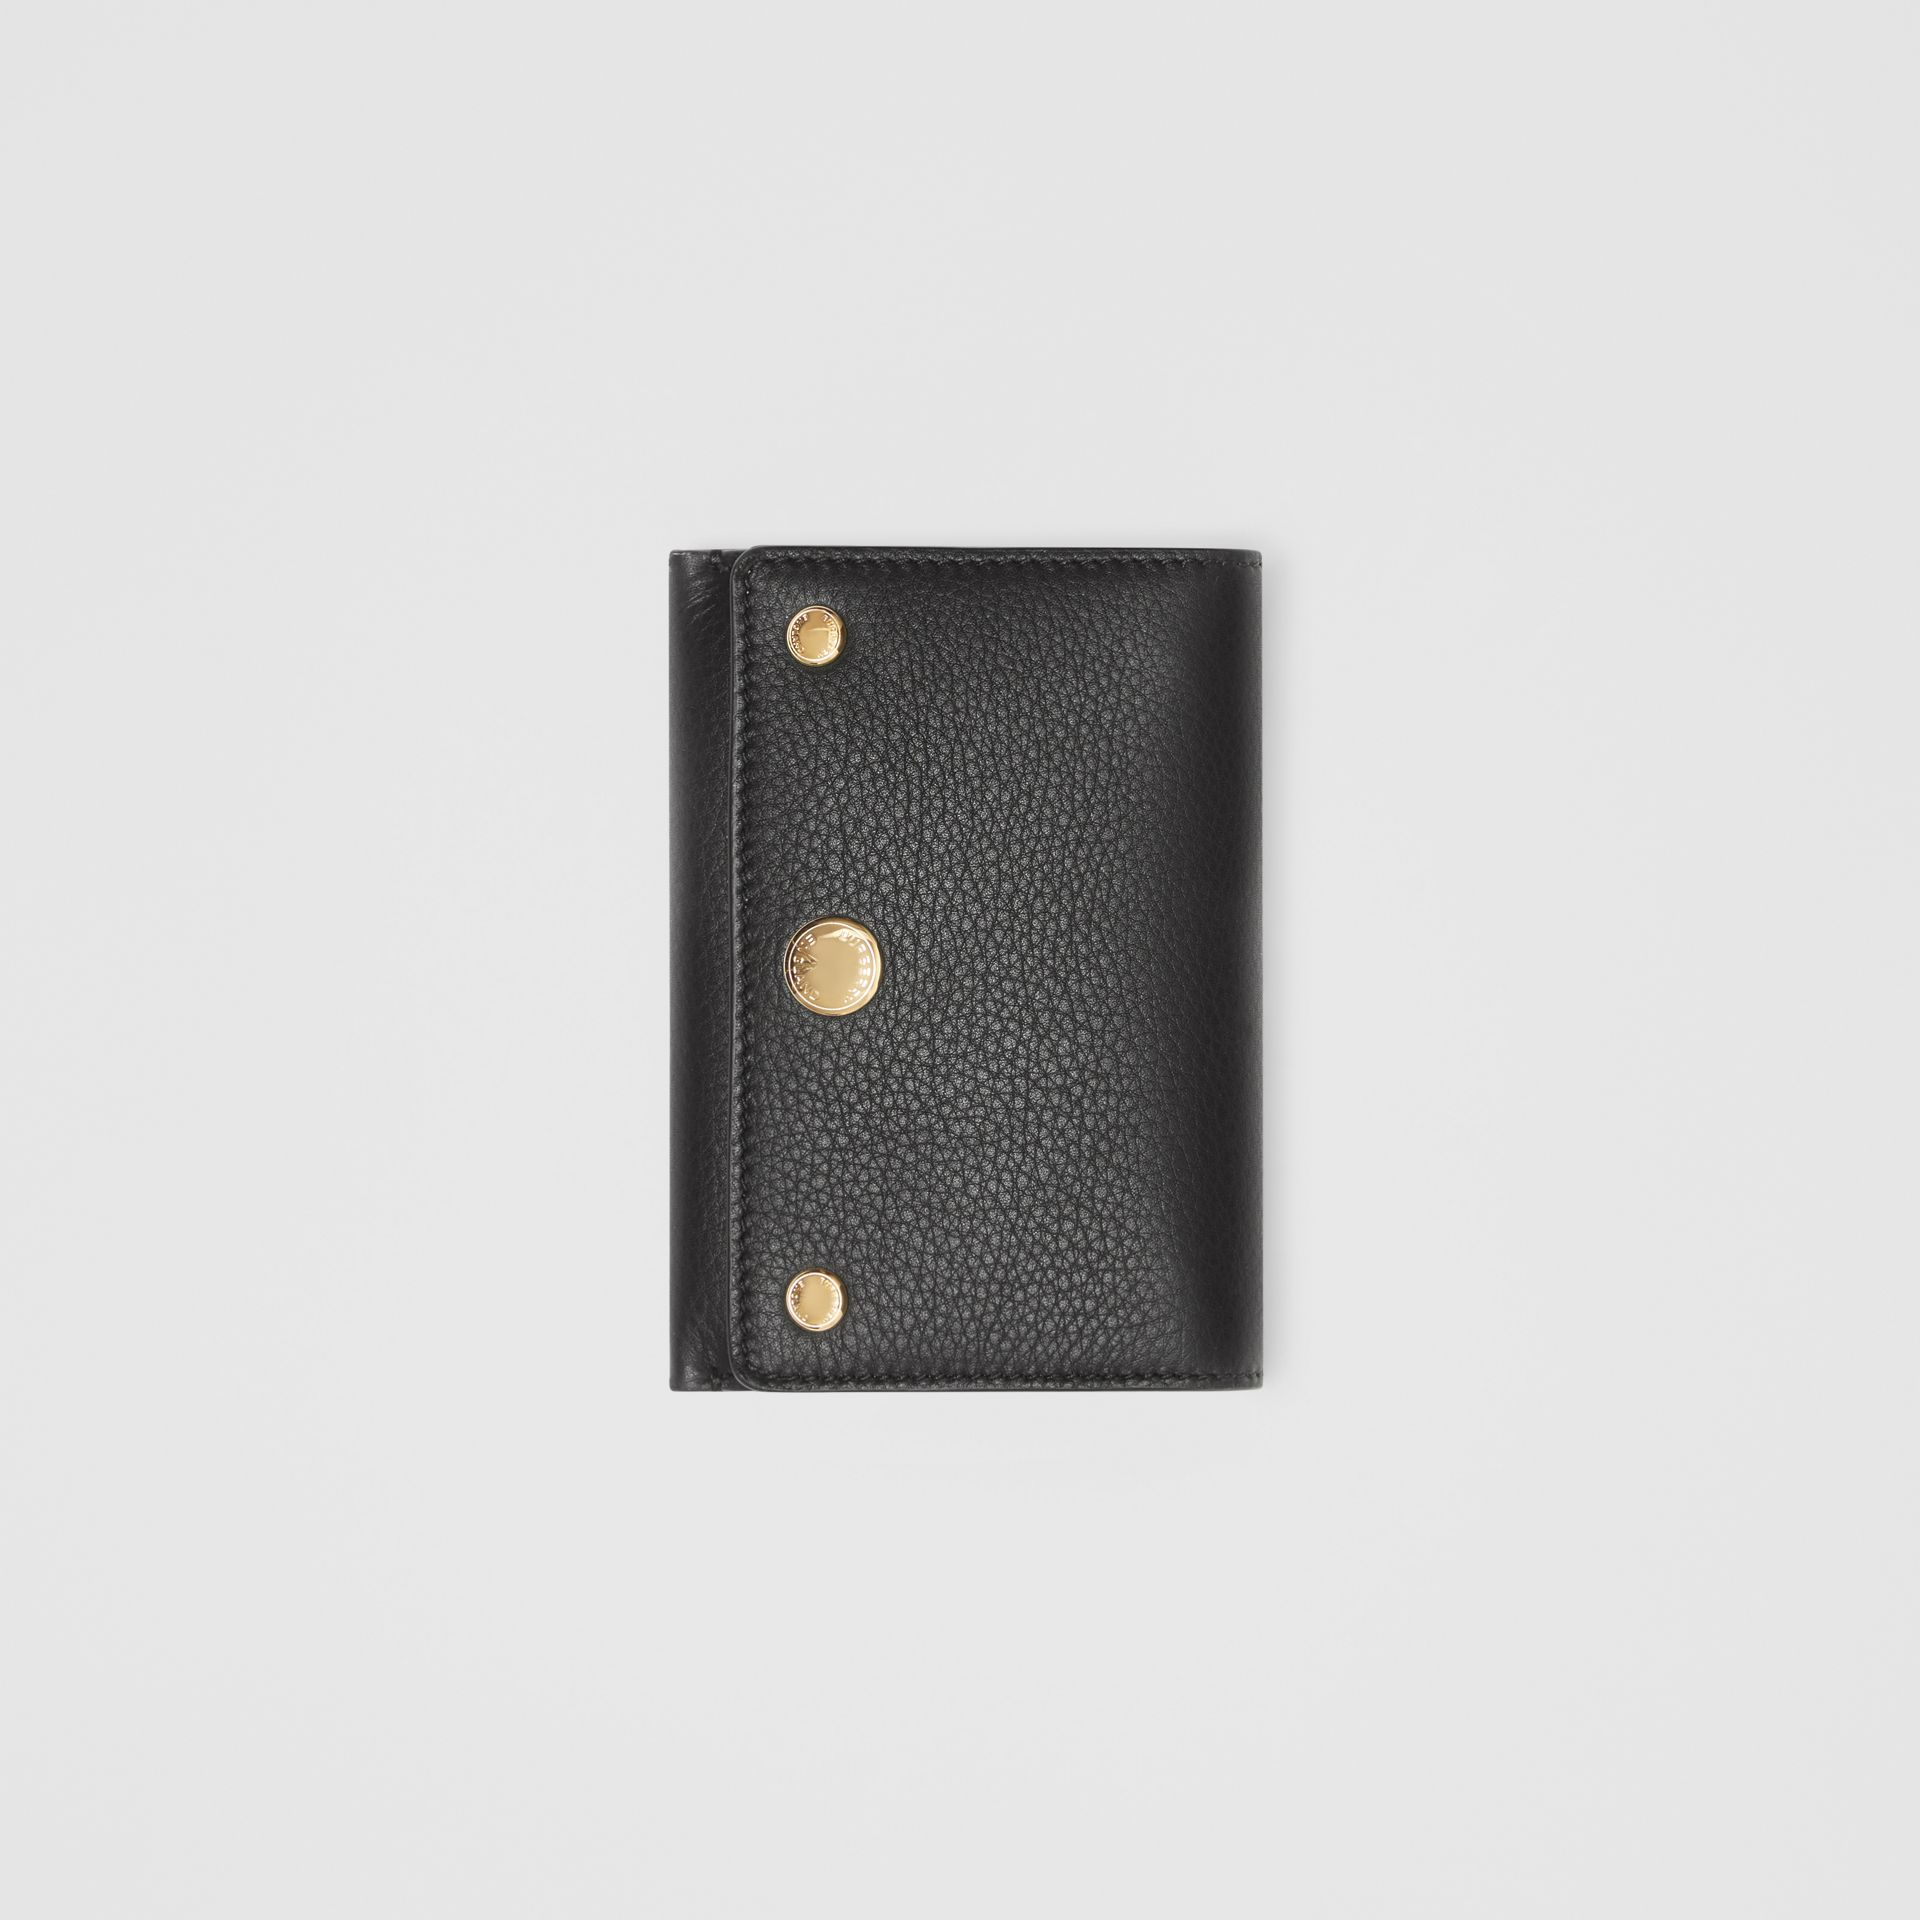 Triple Stud Leather Folding Wallet in Black - Women | Burberry United States - gallery image 3